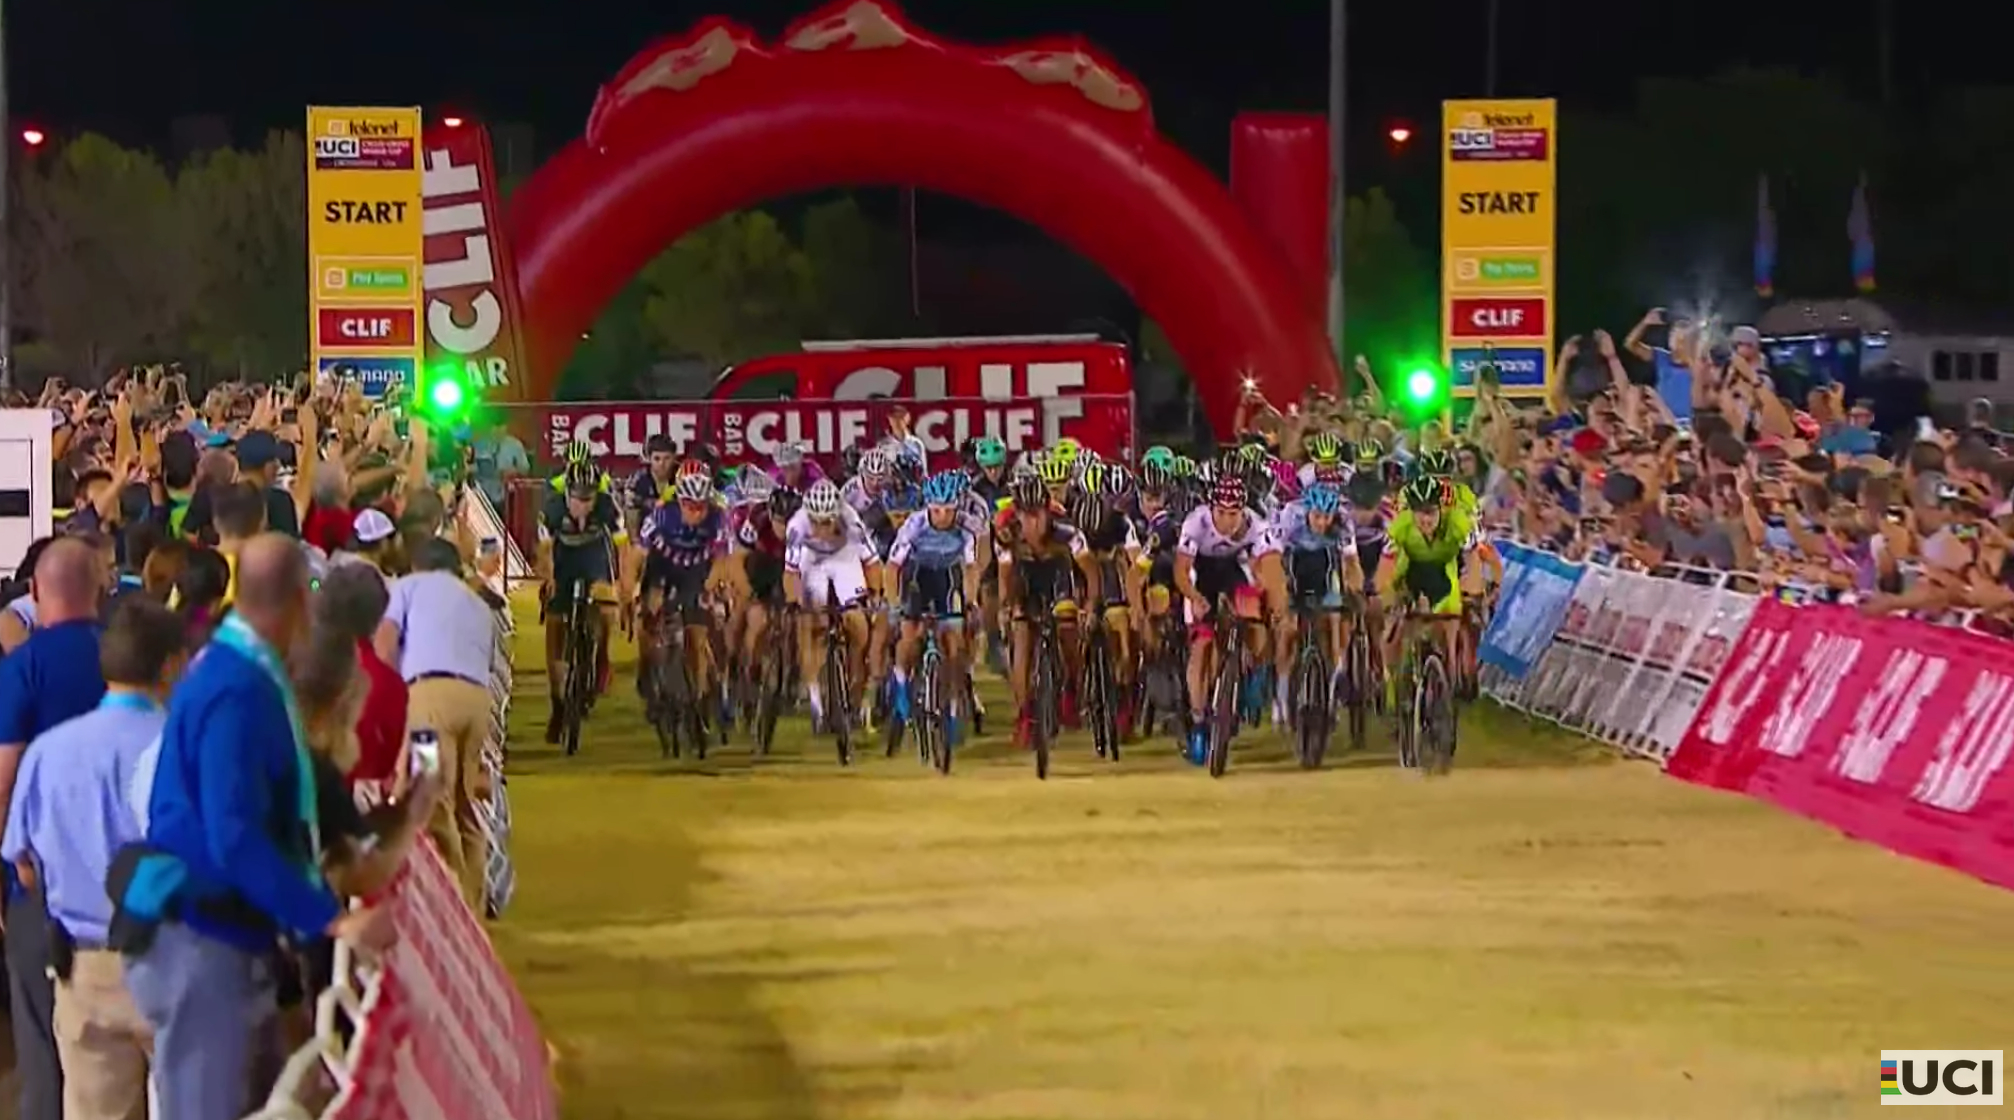 Fifty-eight riders sprint at the blistering start of the men's race at Cross Vegas World Cup on Wednesday night.Look closely over the shoulder of the world champion in white and you'll see Scott Smith in his white Kask helmet.